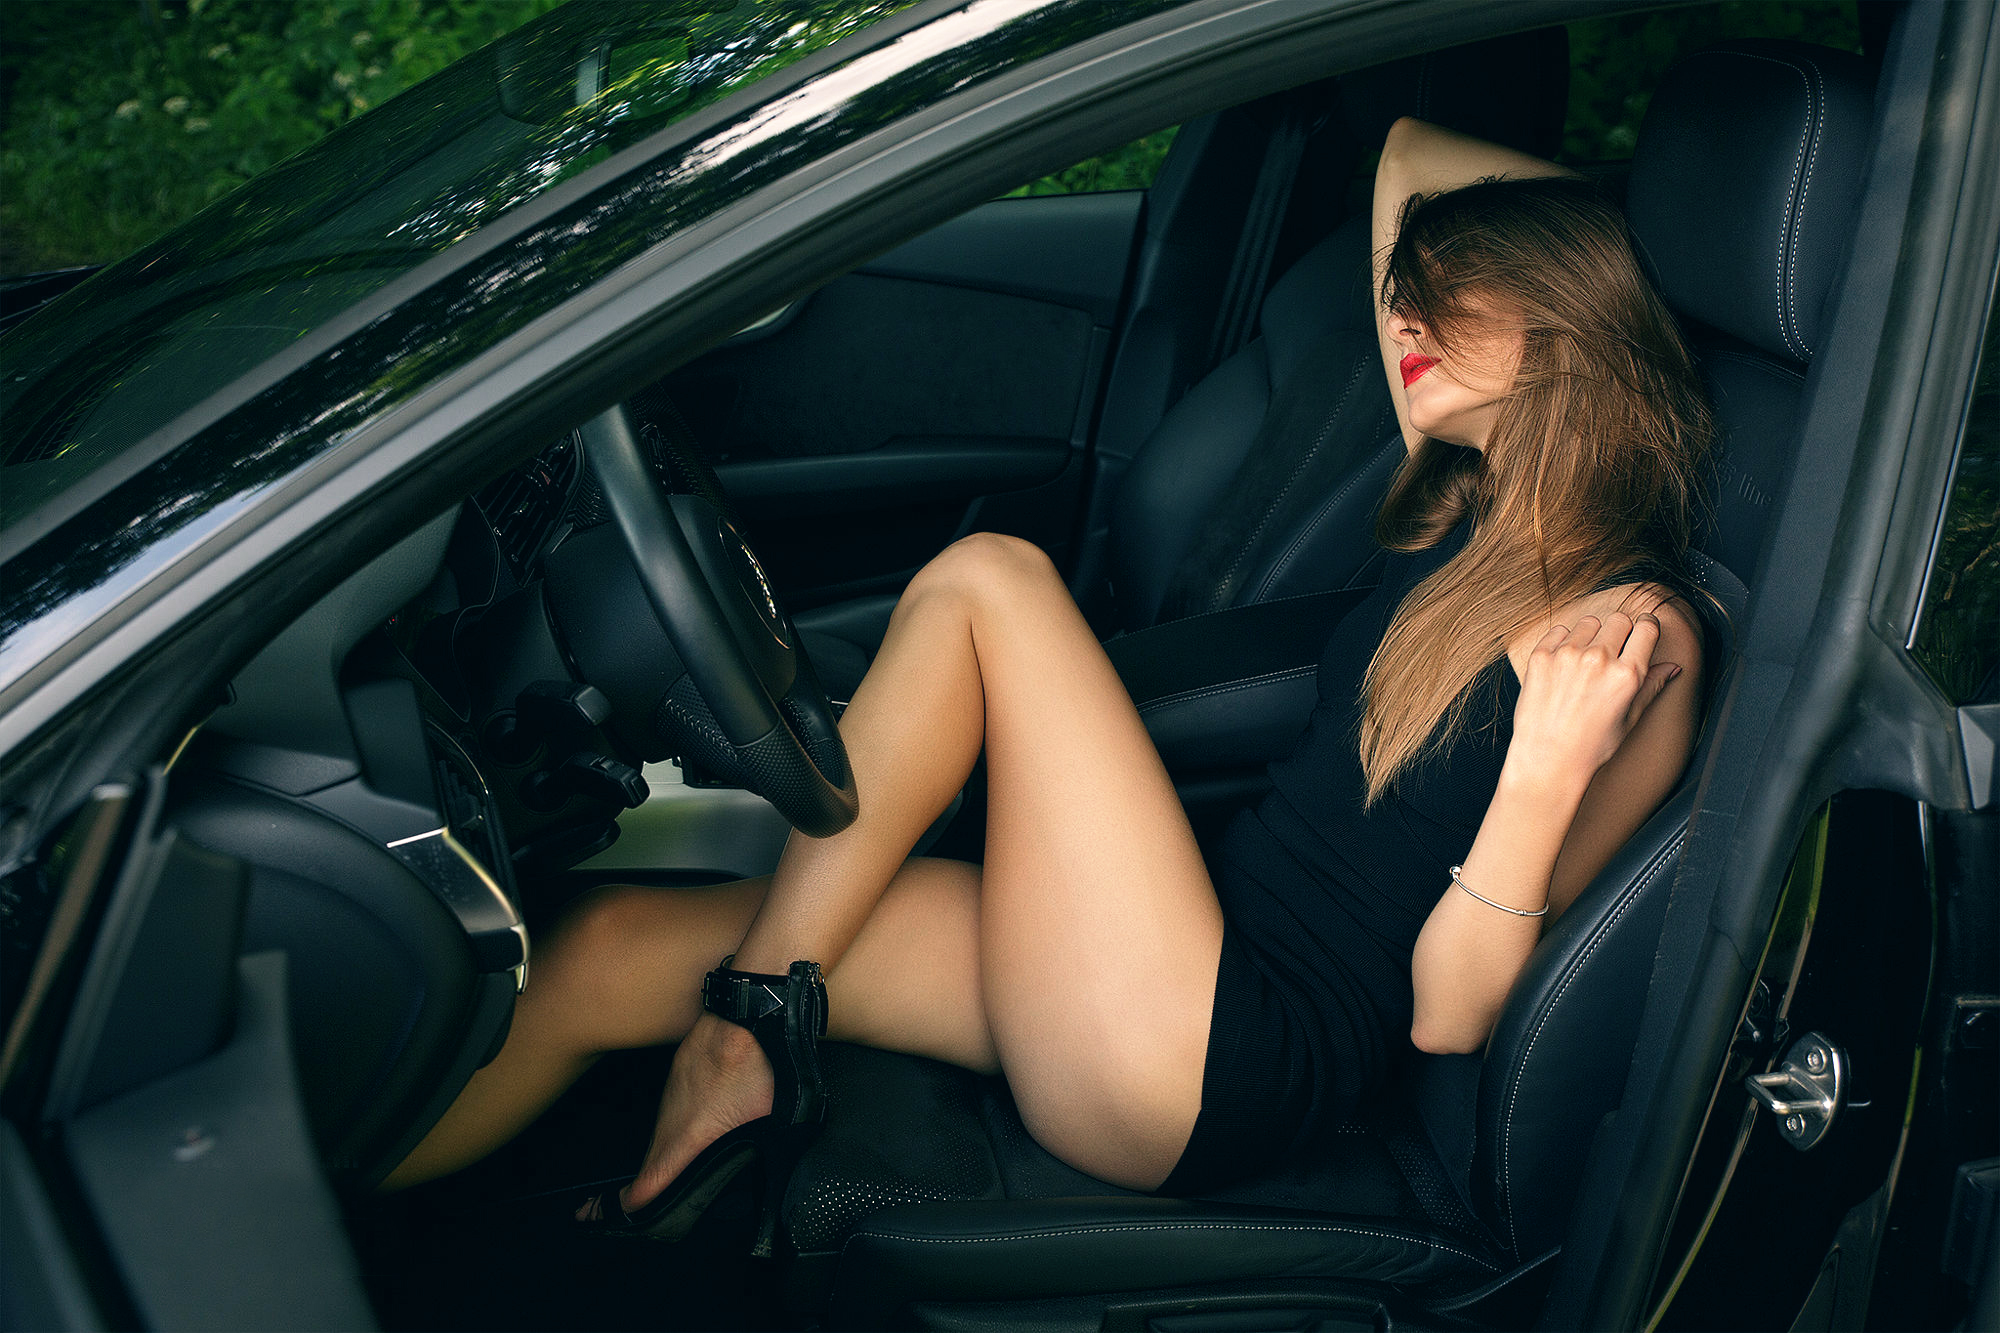 cuckold-girl-loses-shirt-in-car-cute-girl-with